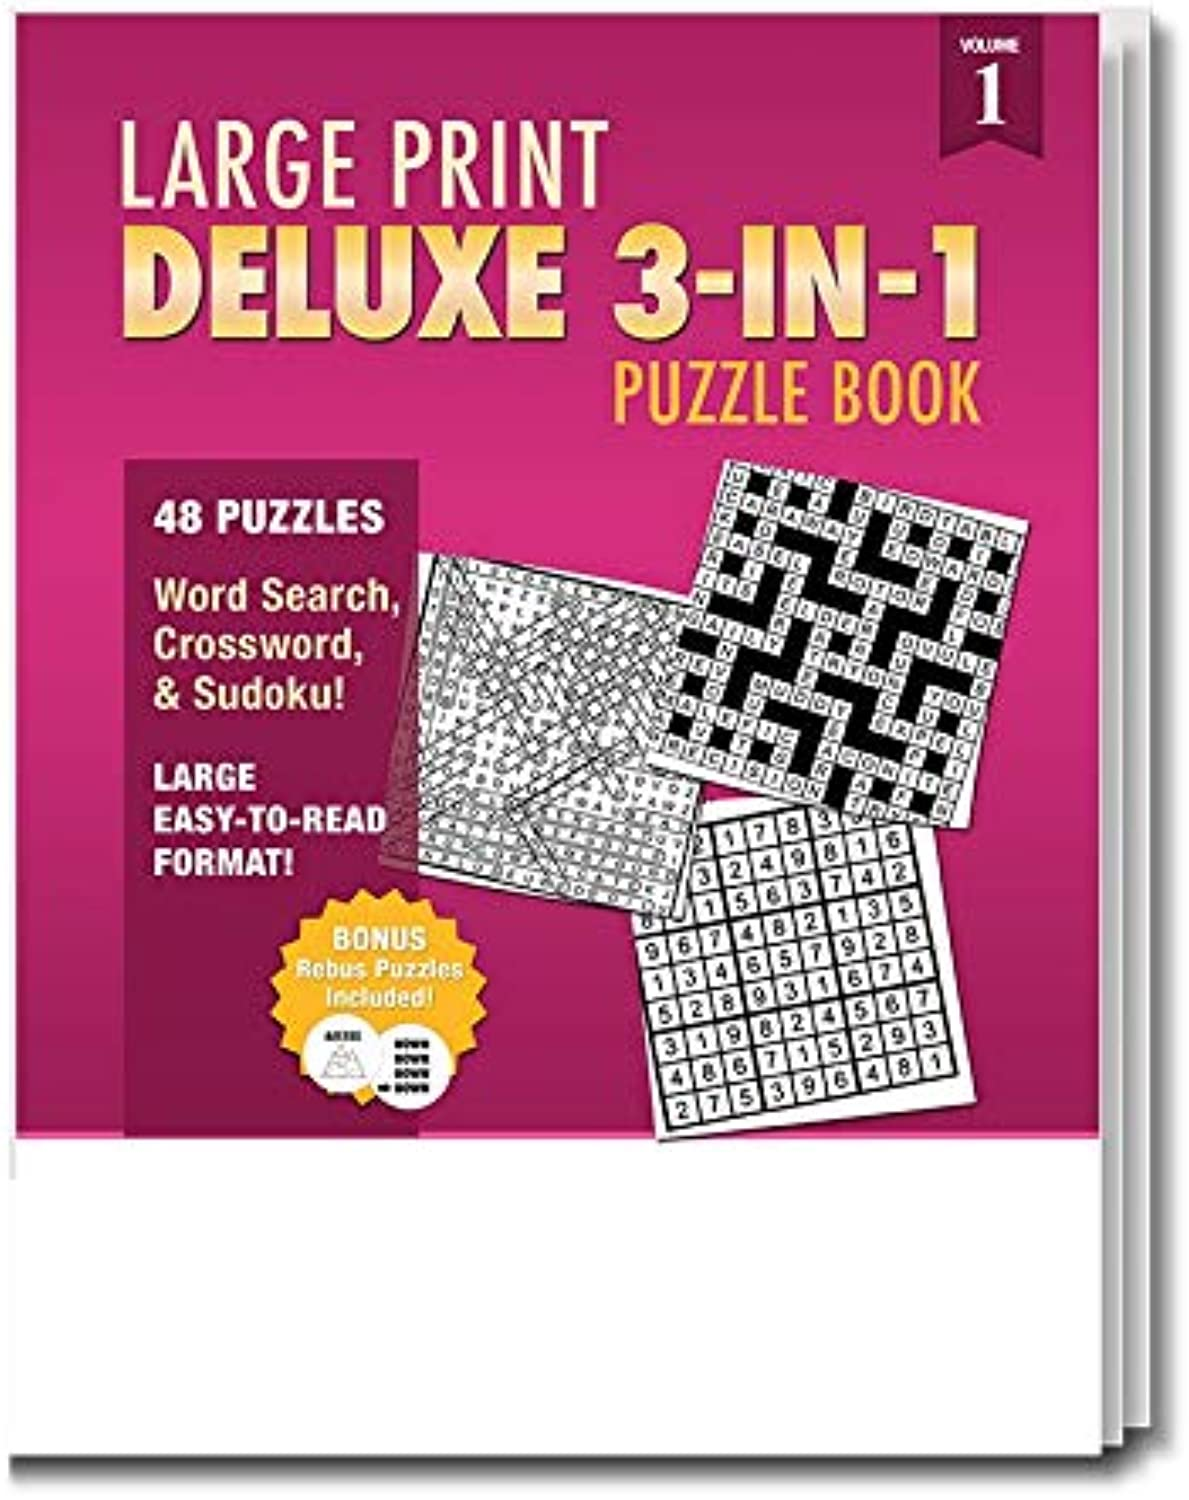 Safety Magnets 25 Pack - Large Print Deluxe 3-in-1 Puzzle Books for Seniors in Bulk - Word Search, Crossword & Sudoku